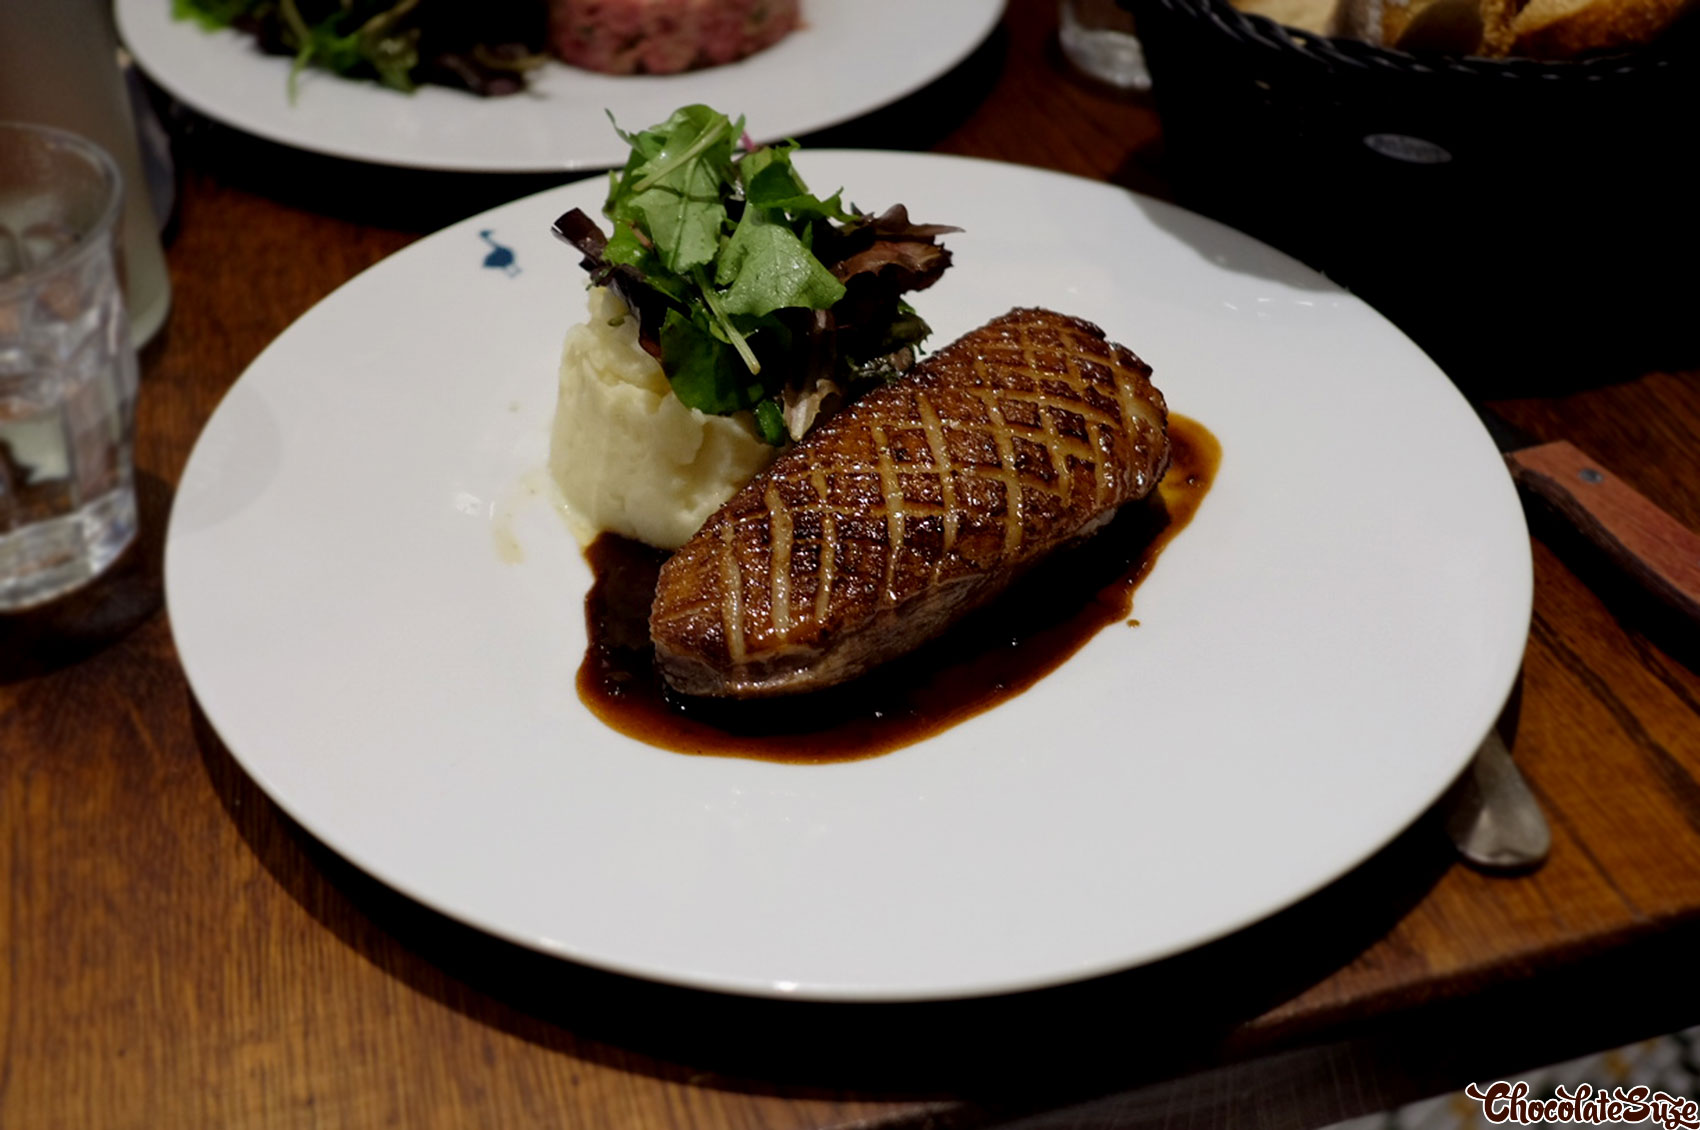 Roasted duck with balsamic sauce at Le Comptoir de la Gastronomie, Paris